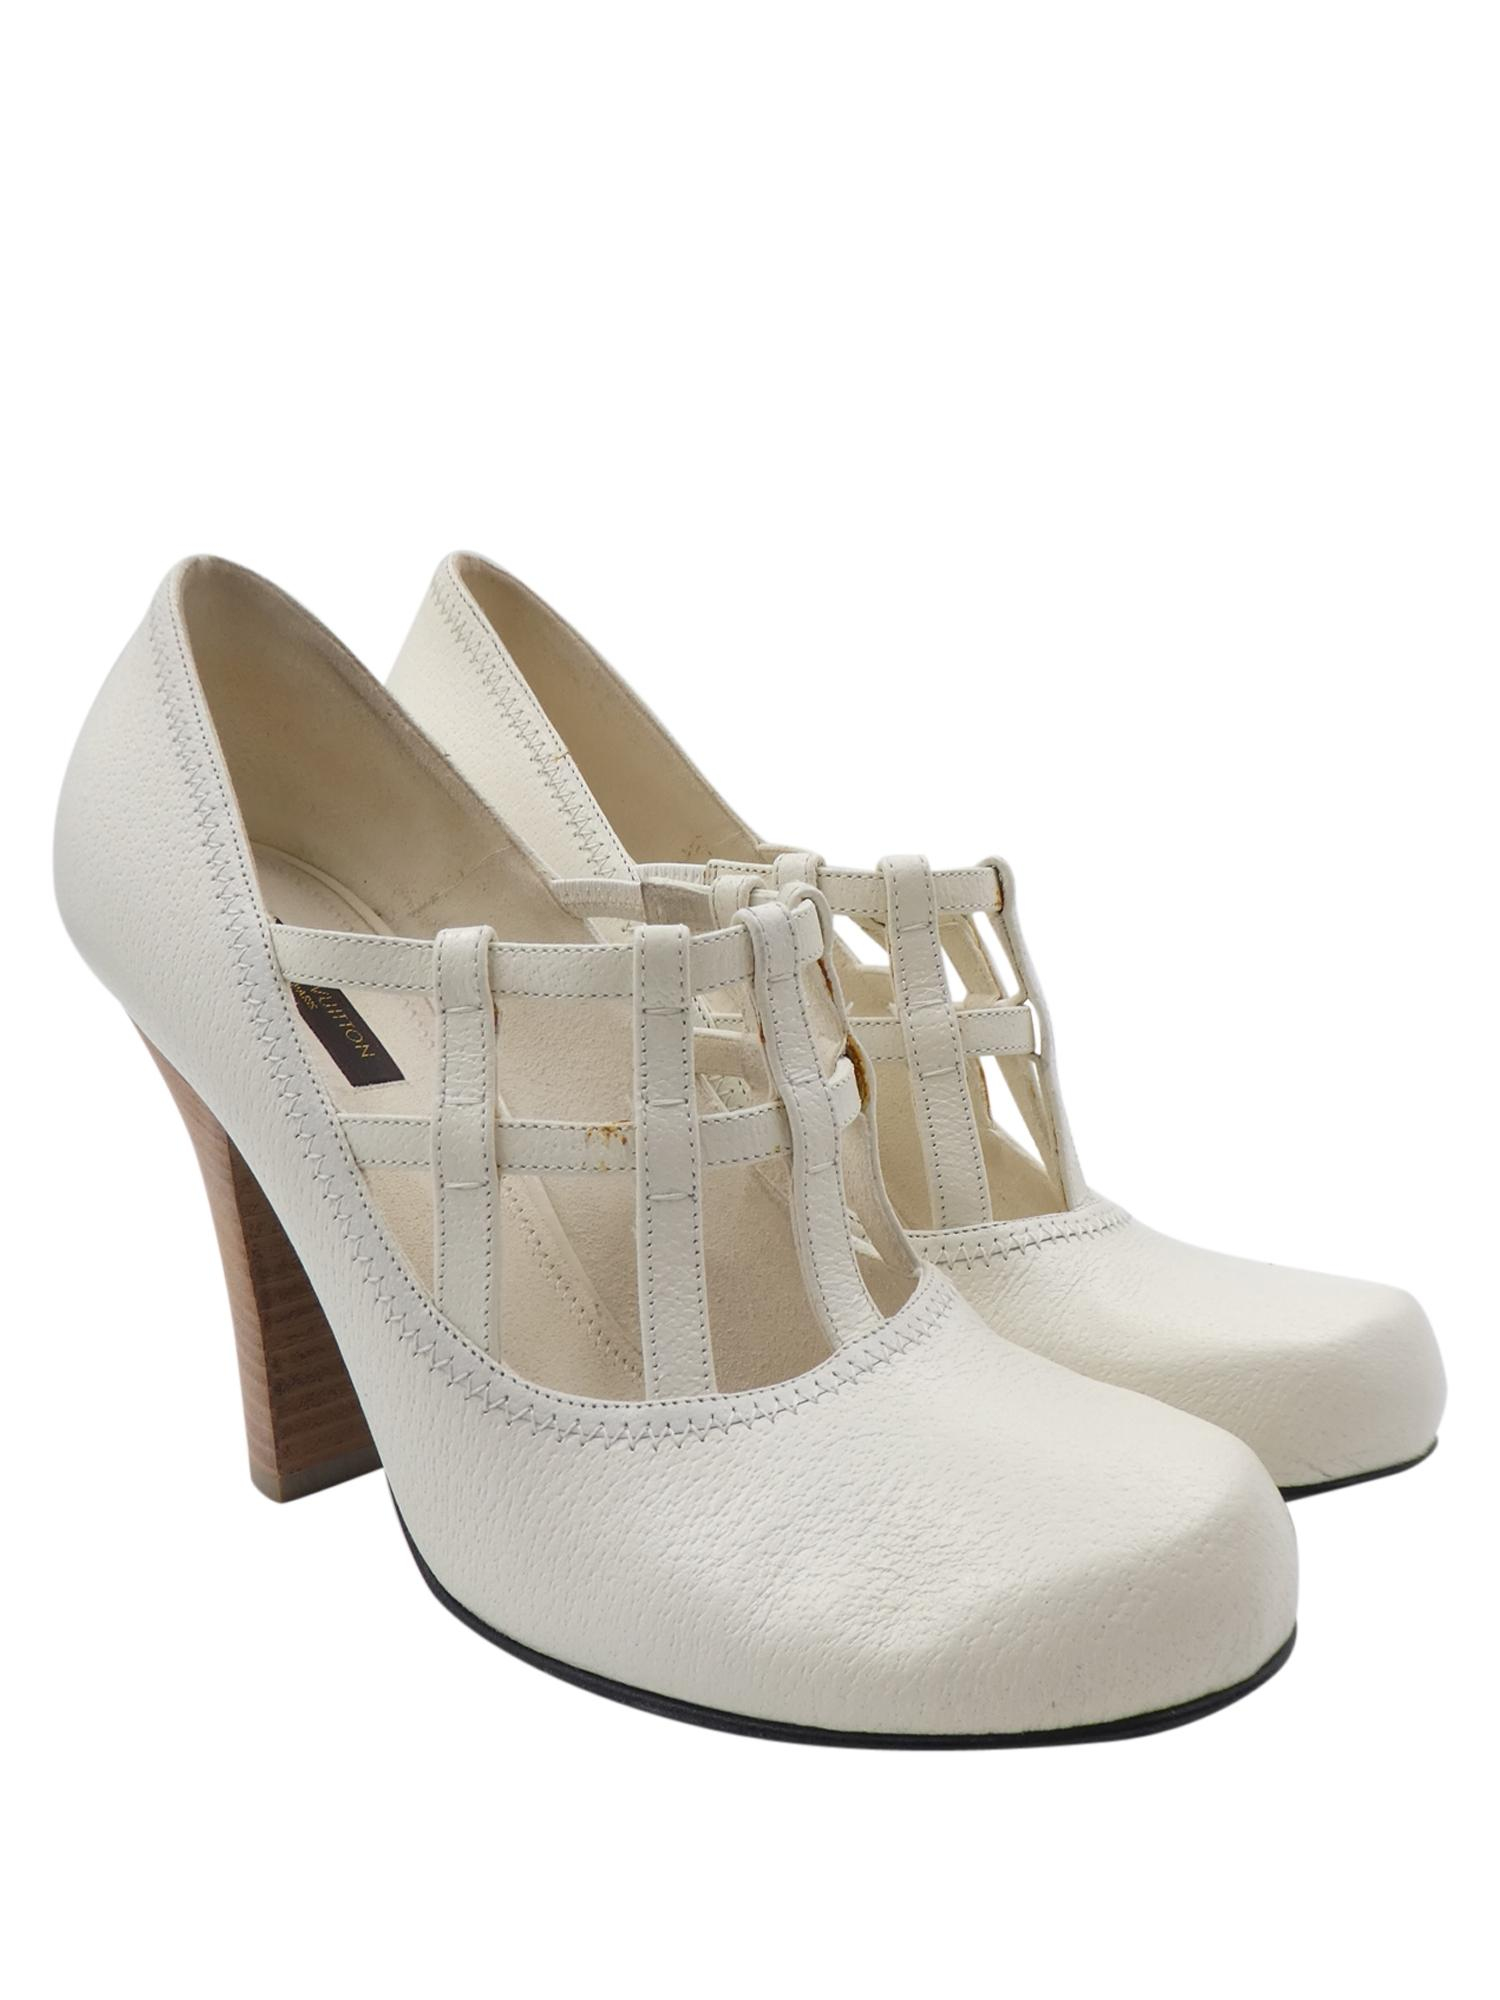 Louis Vuitton Wedding Shoes Chunky Mary Jane Heels White Pumps